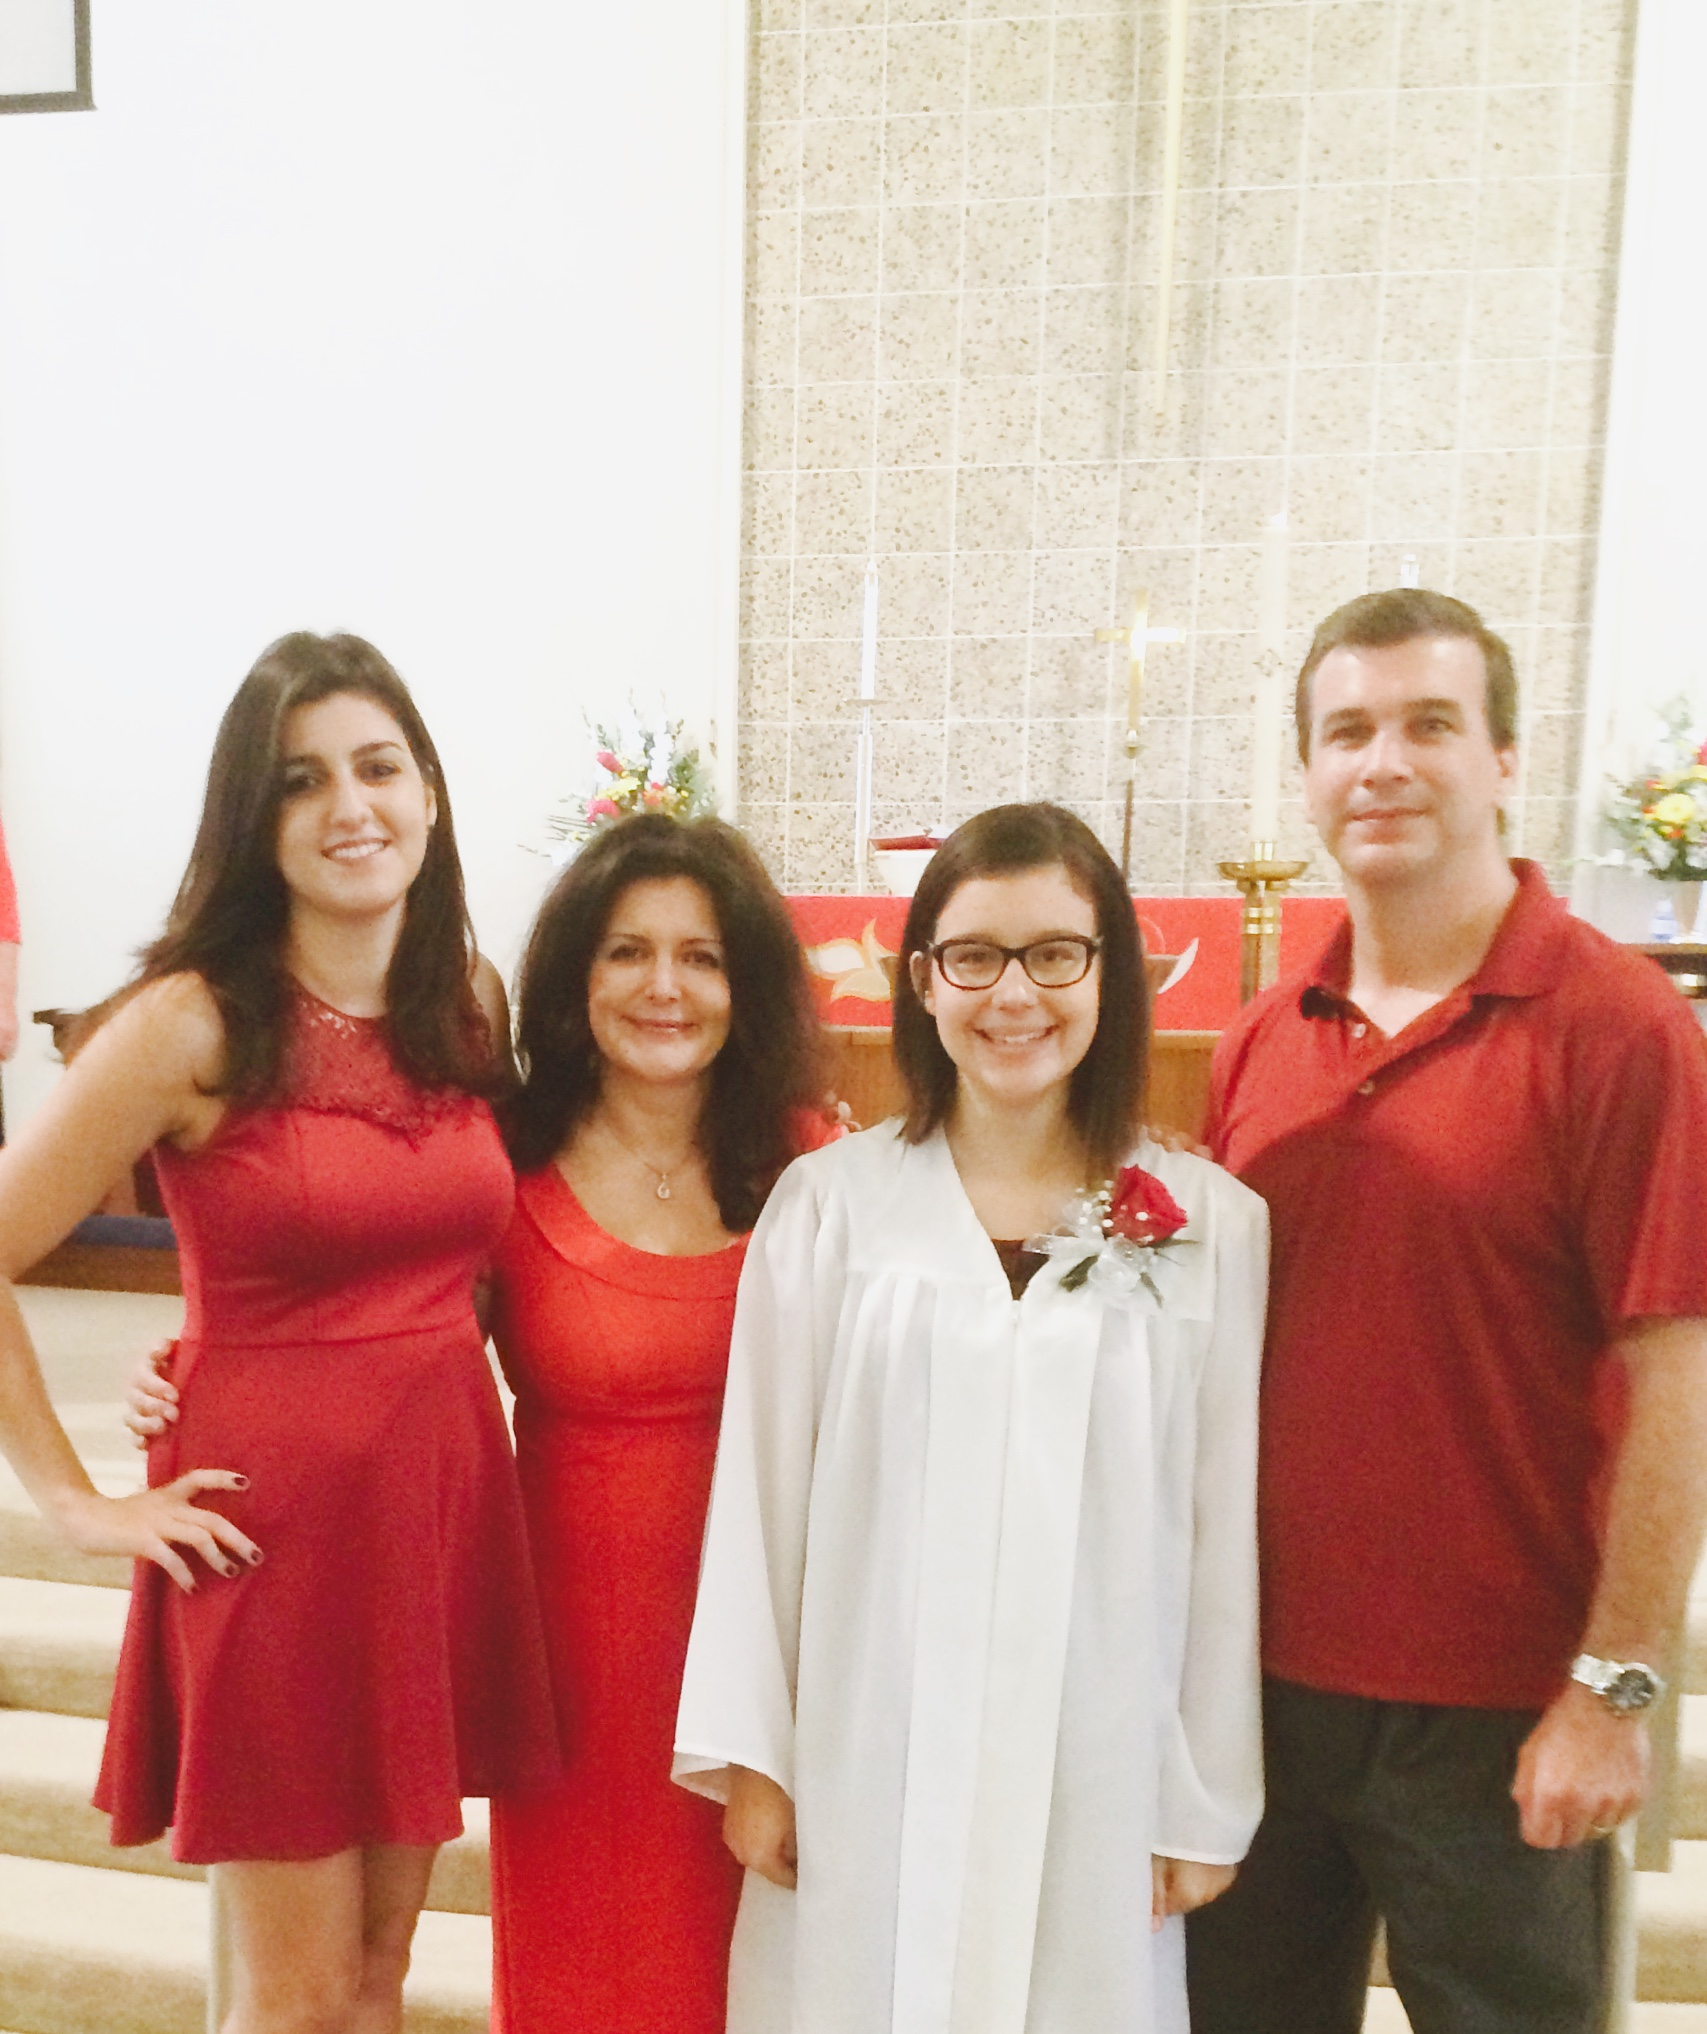 Confirmation Caitlyn Kester Oct 26 2014